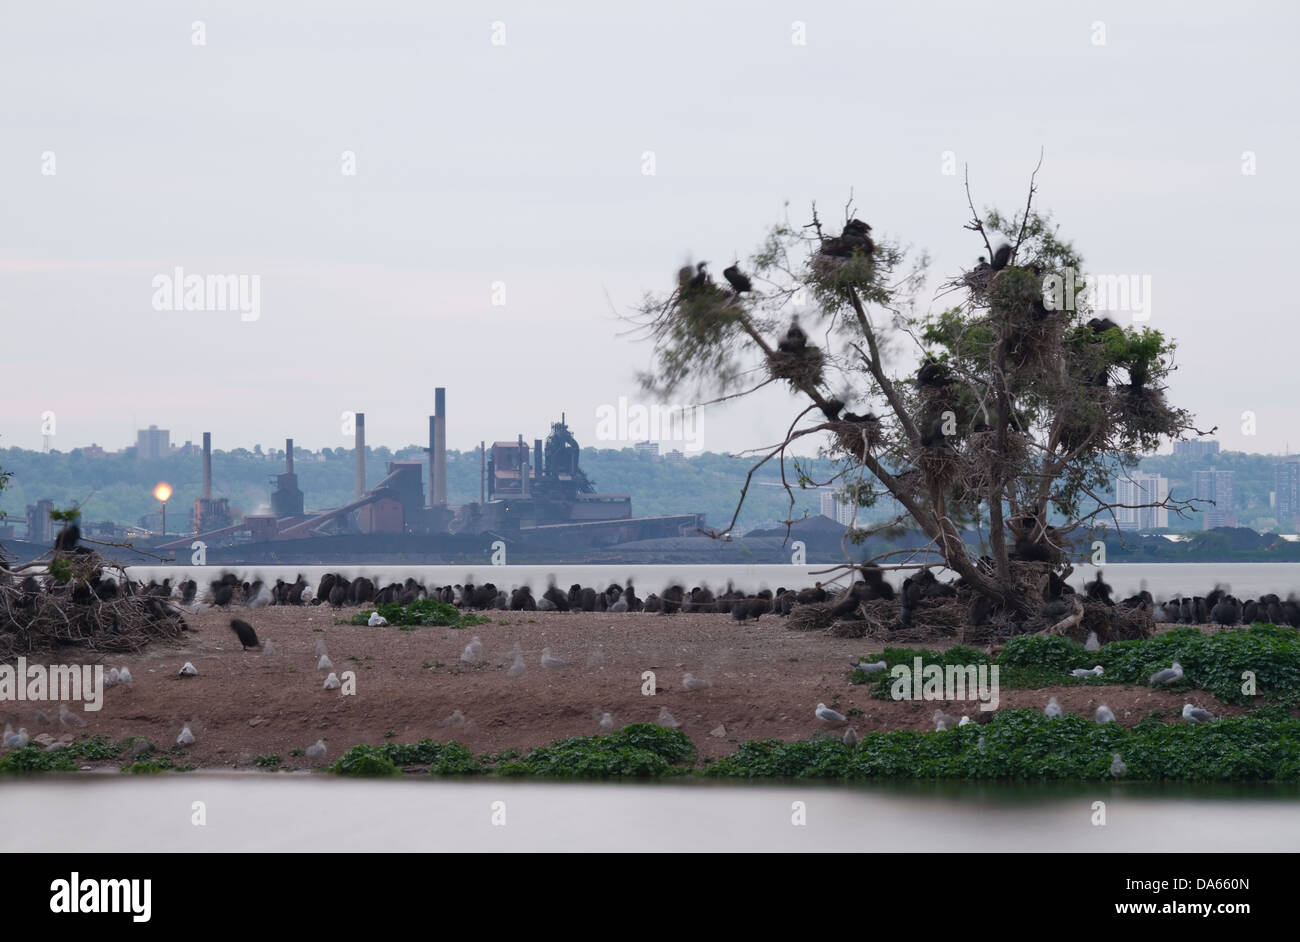 Long exposure of cormorants, seagulls and a dead tree in front of heavy industry, Hamilton, Ontario, Canada. - Stock Image